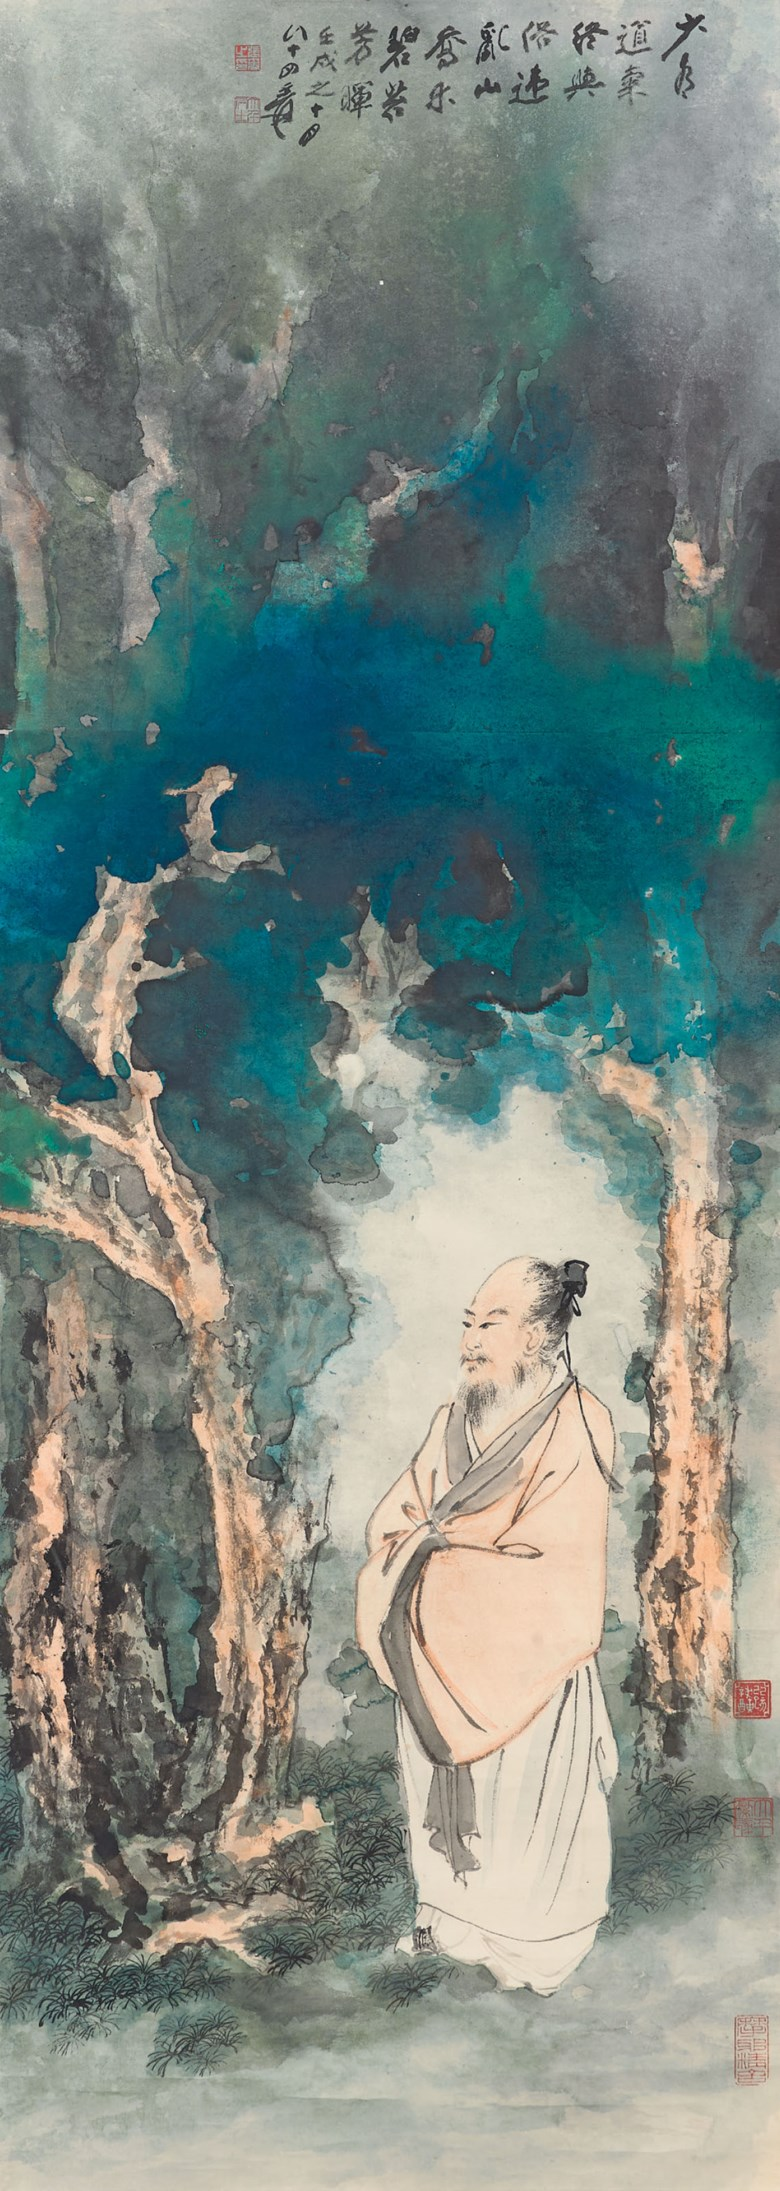 Zhang Daqian (1899-1983) Lofty Scholar by Lush Trees, 1982. 177 x 61  cm (69⅝ x 24  in). Estimate HK$18,000,000-26,000,000. Offered in Fine Chinese Modern Paintings on 29 May at Christie's Hong Kong